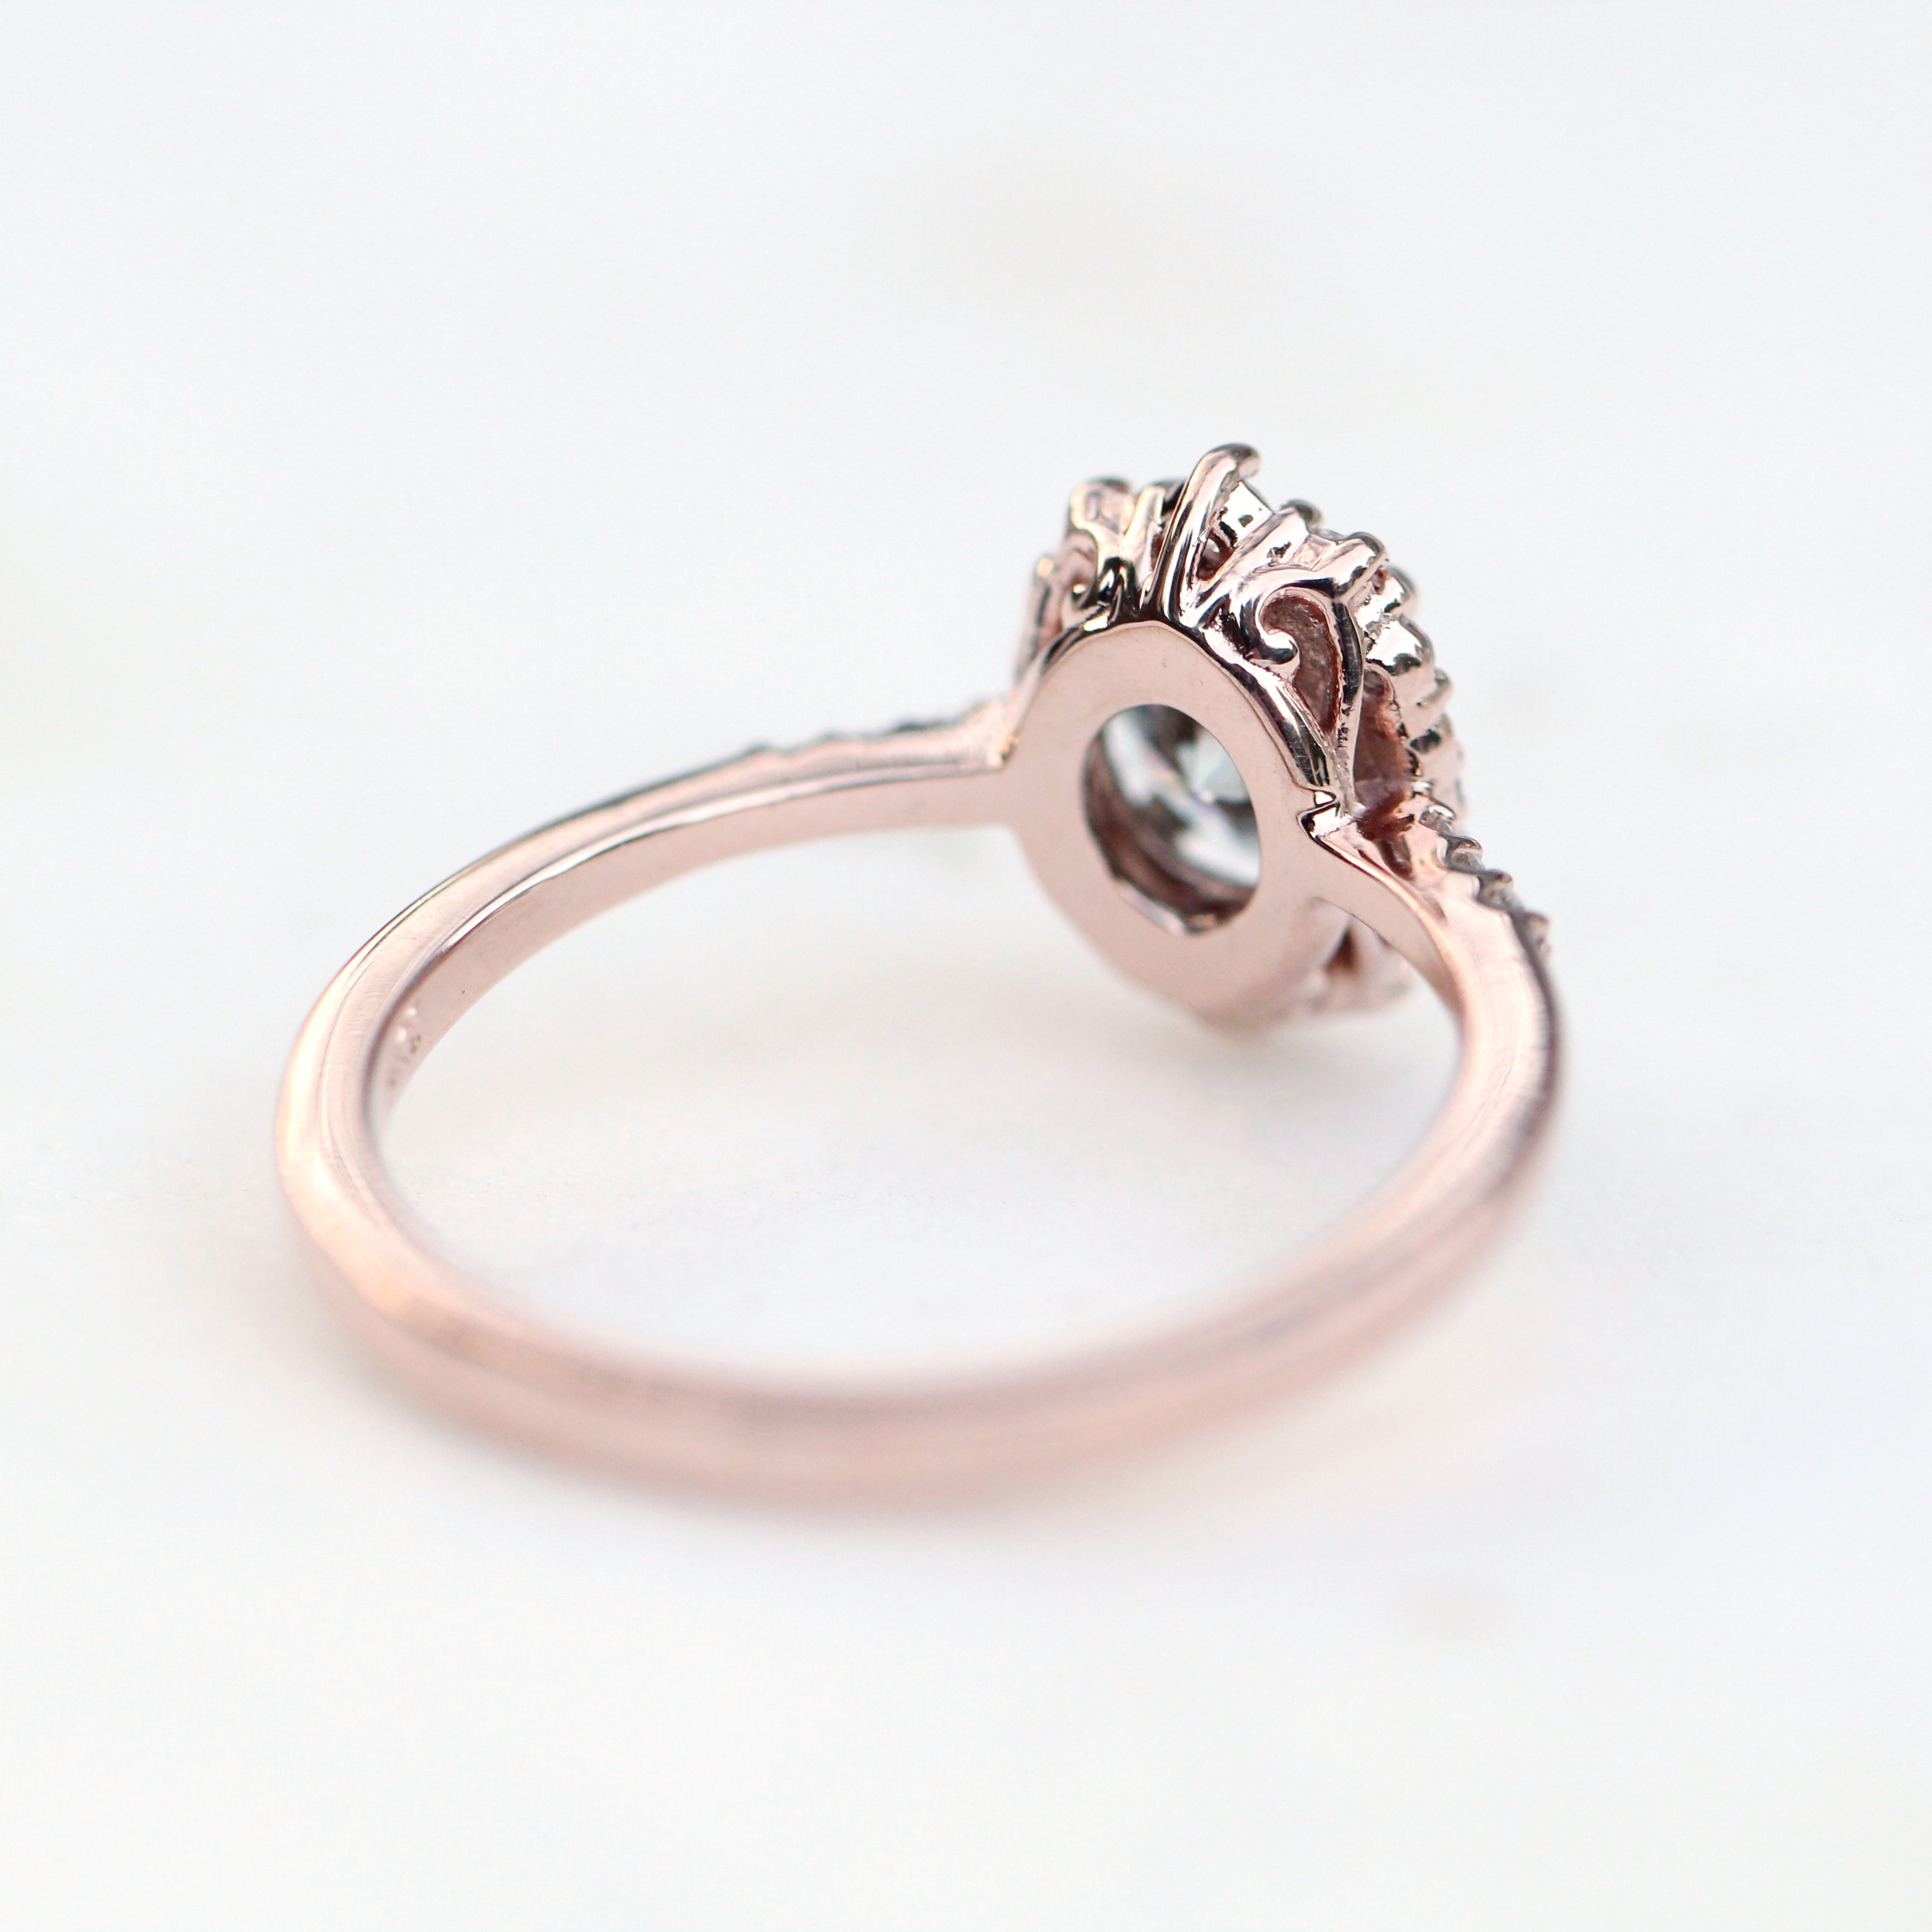 Grace Ring with a 0.75 Carat Gray Moissanite Surrounded by White Diamond Accents in 14k Rose Gold - Ready to Size and Ship - Midwinter Co. Alternative Bridal Rings and Modern Fine Jewelry